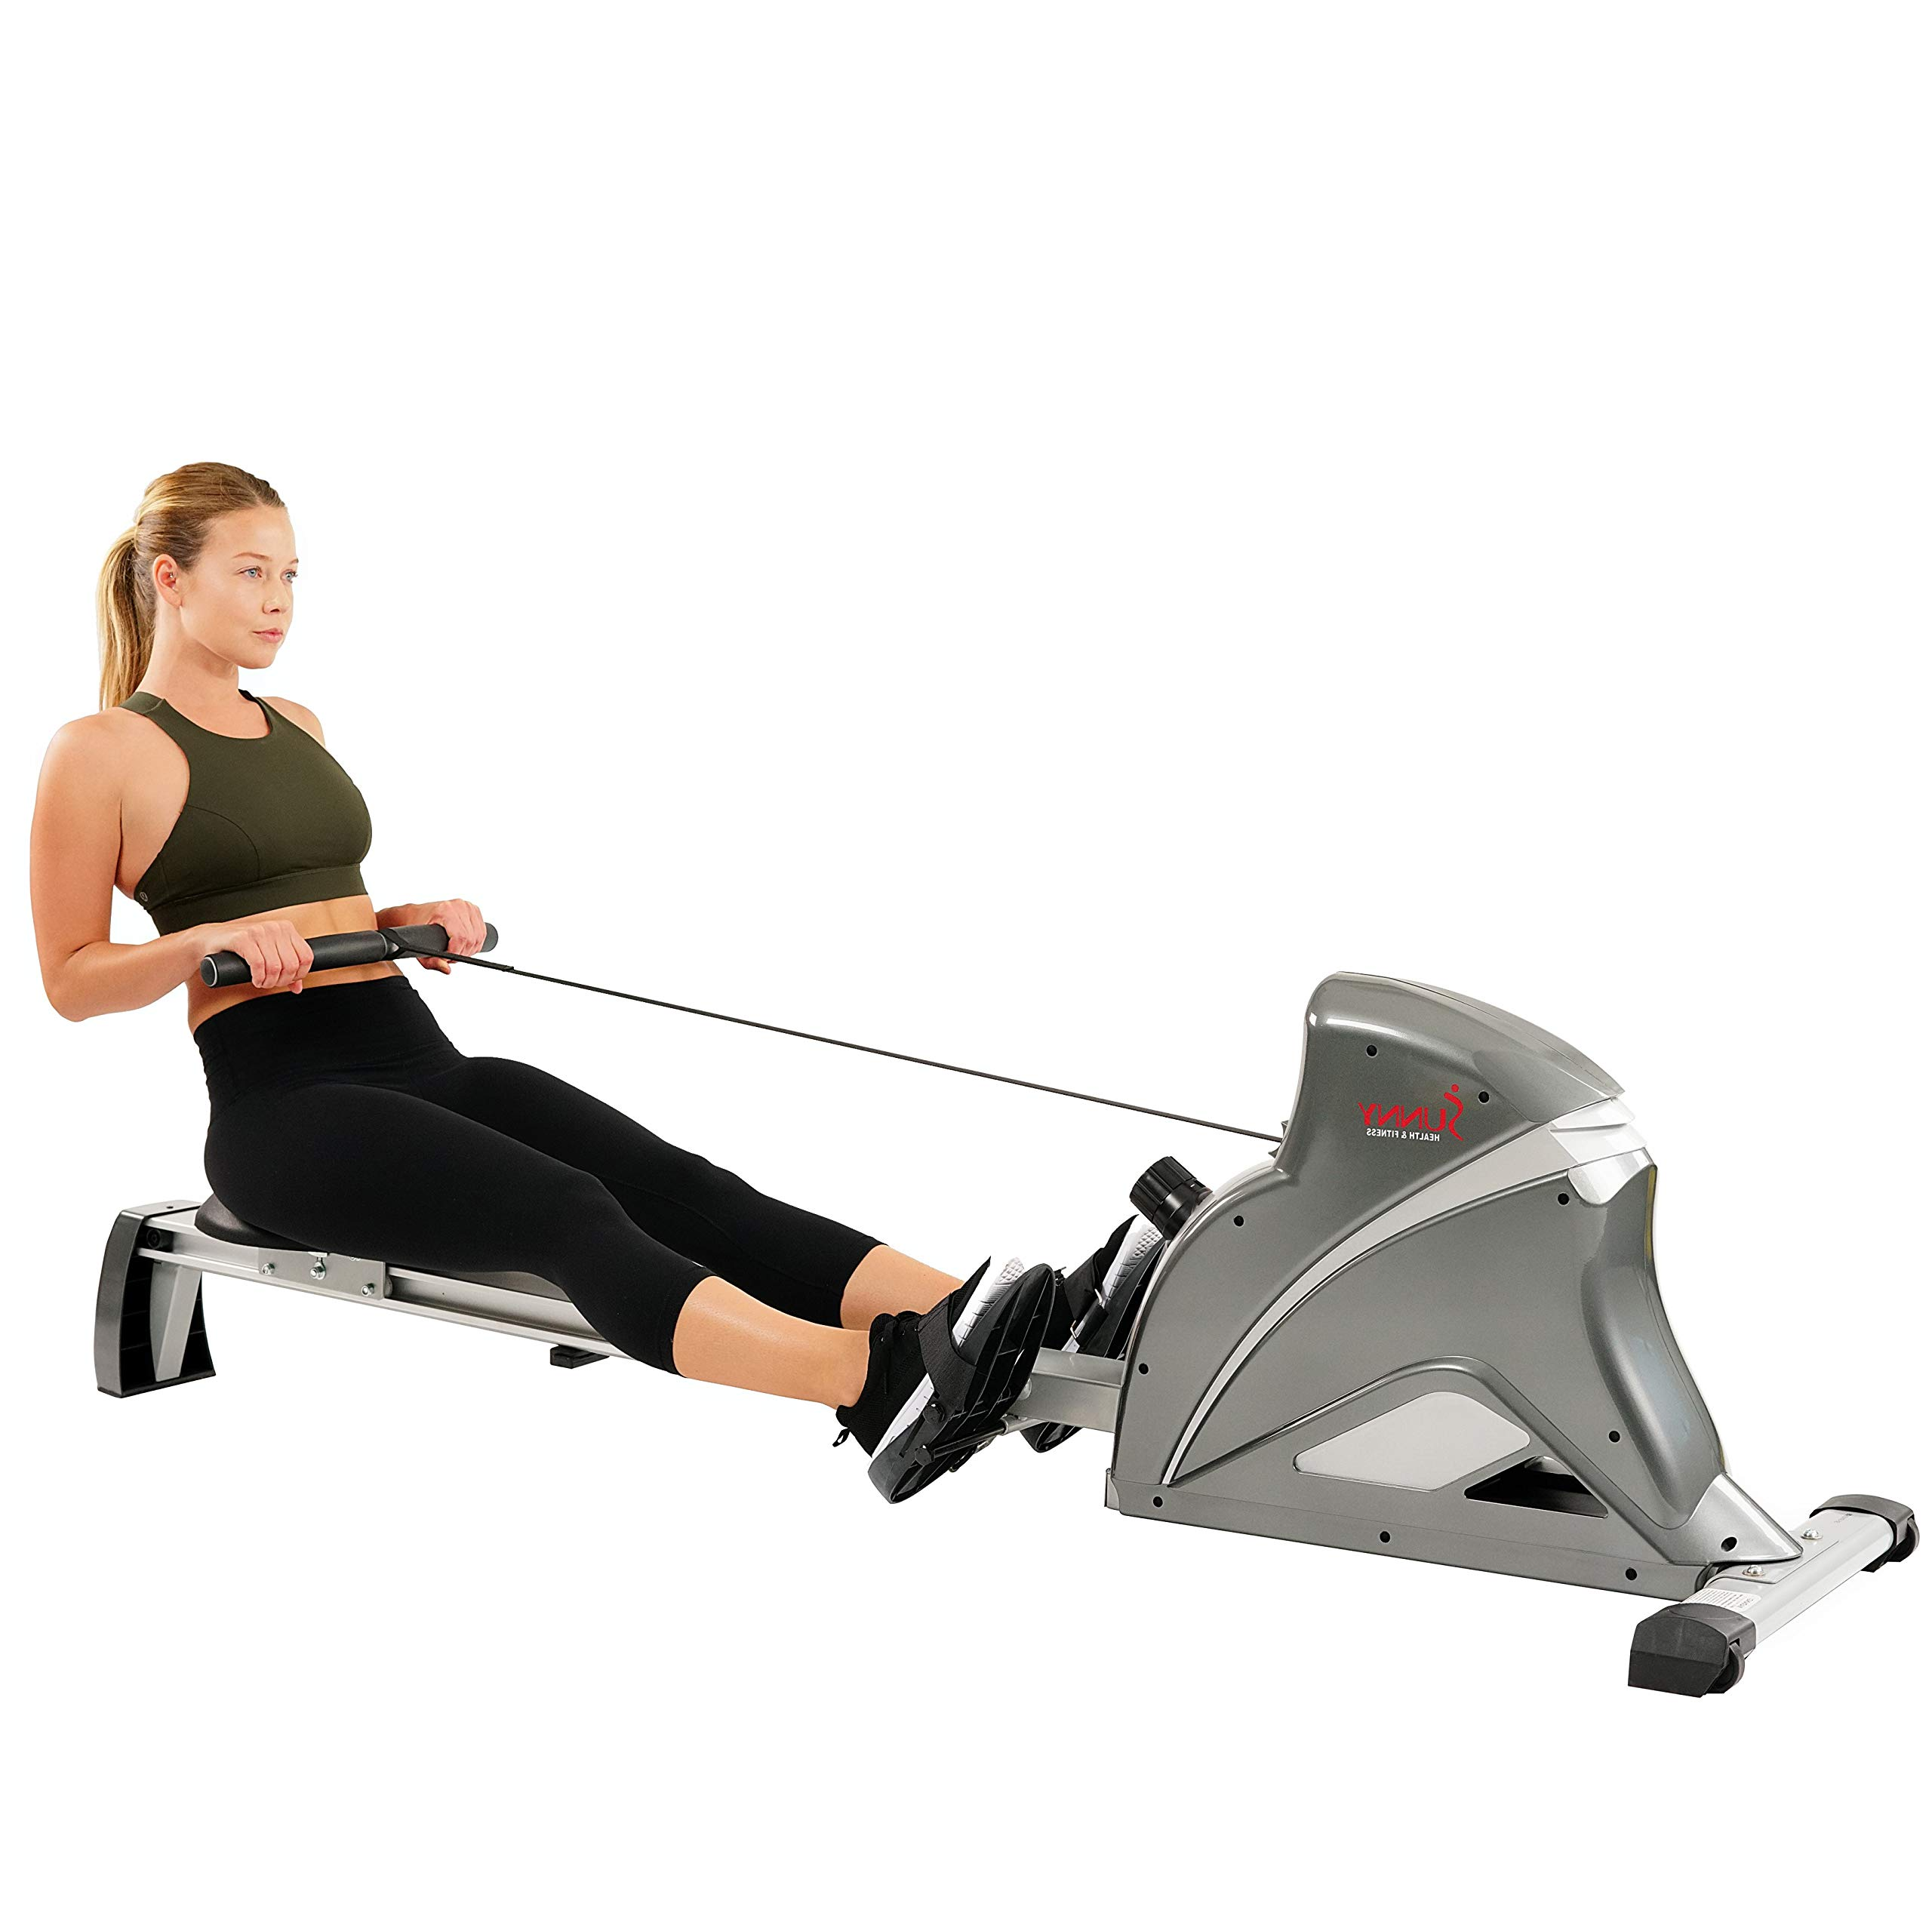 Sunny Health & Fitness Pro Rowing Machine Rower Ergometer with 10 Levels of Magnetic Resistance, Advanced Digital Monitor, 300 LB Weight Capacity, SF-RW5508